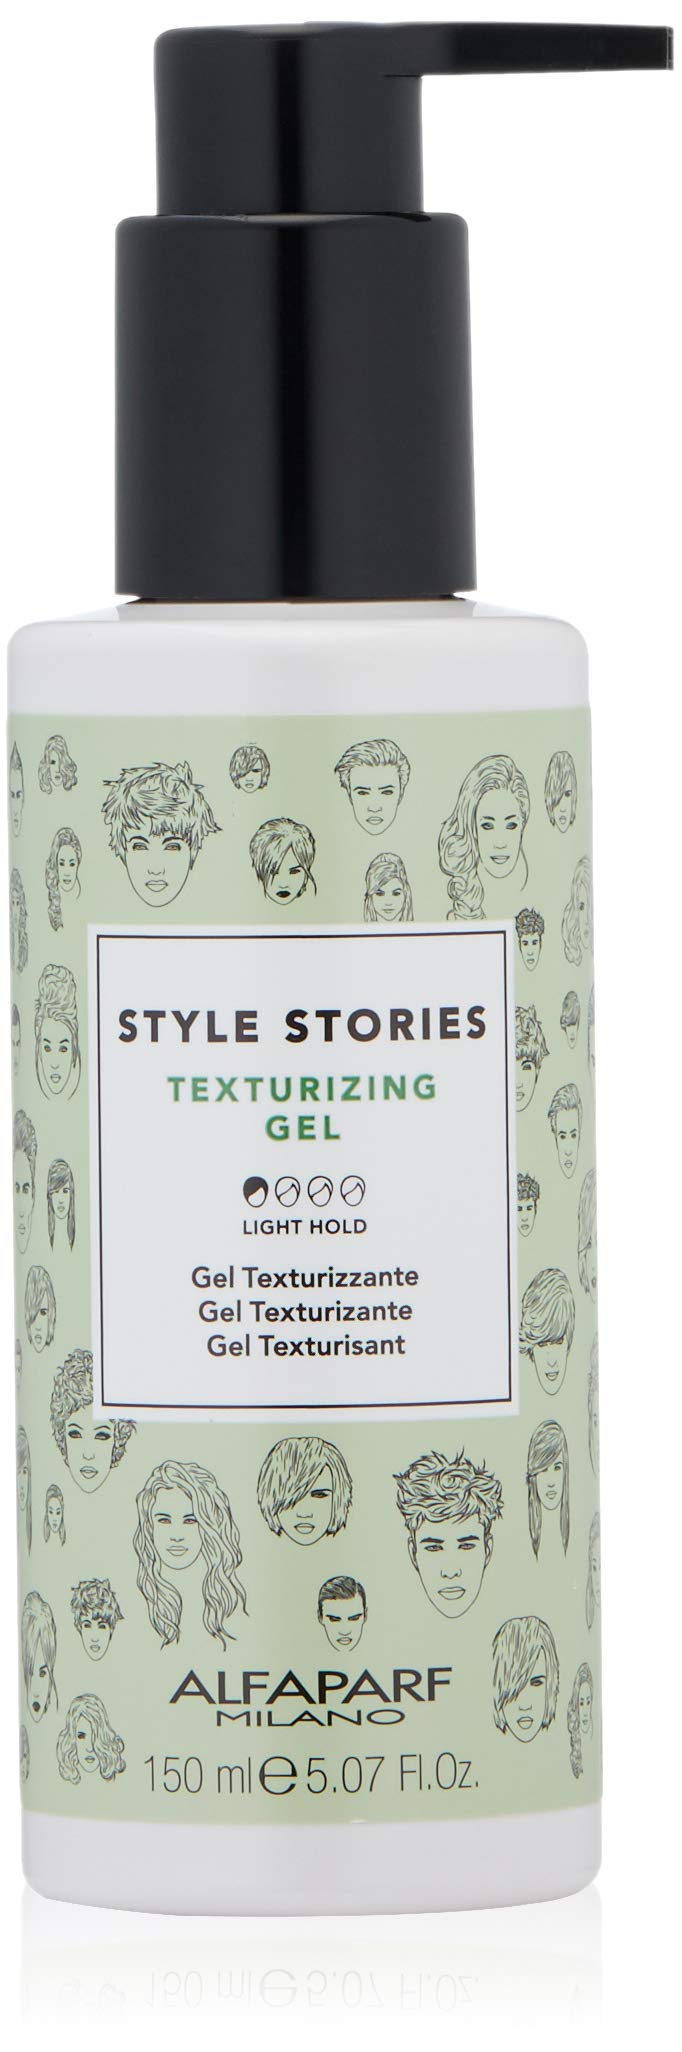 Alfaparf Milano Style Stories Texturizing Gel Styling Product - Light Hold - Professional Salon Quality - Increases Volume and Body  - 5.07 fl. oz. by Alfaparf Milano